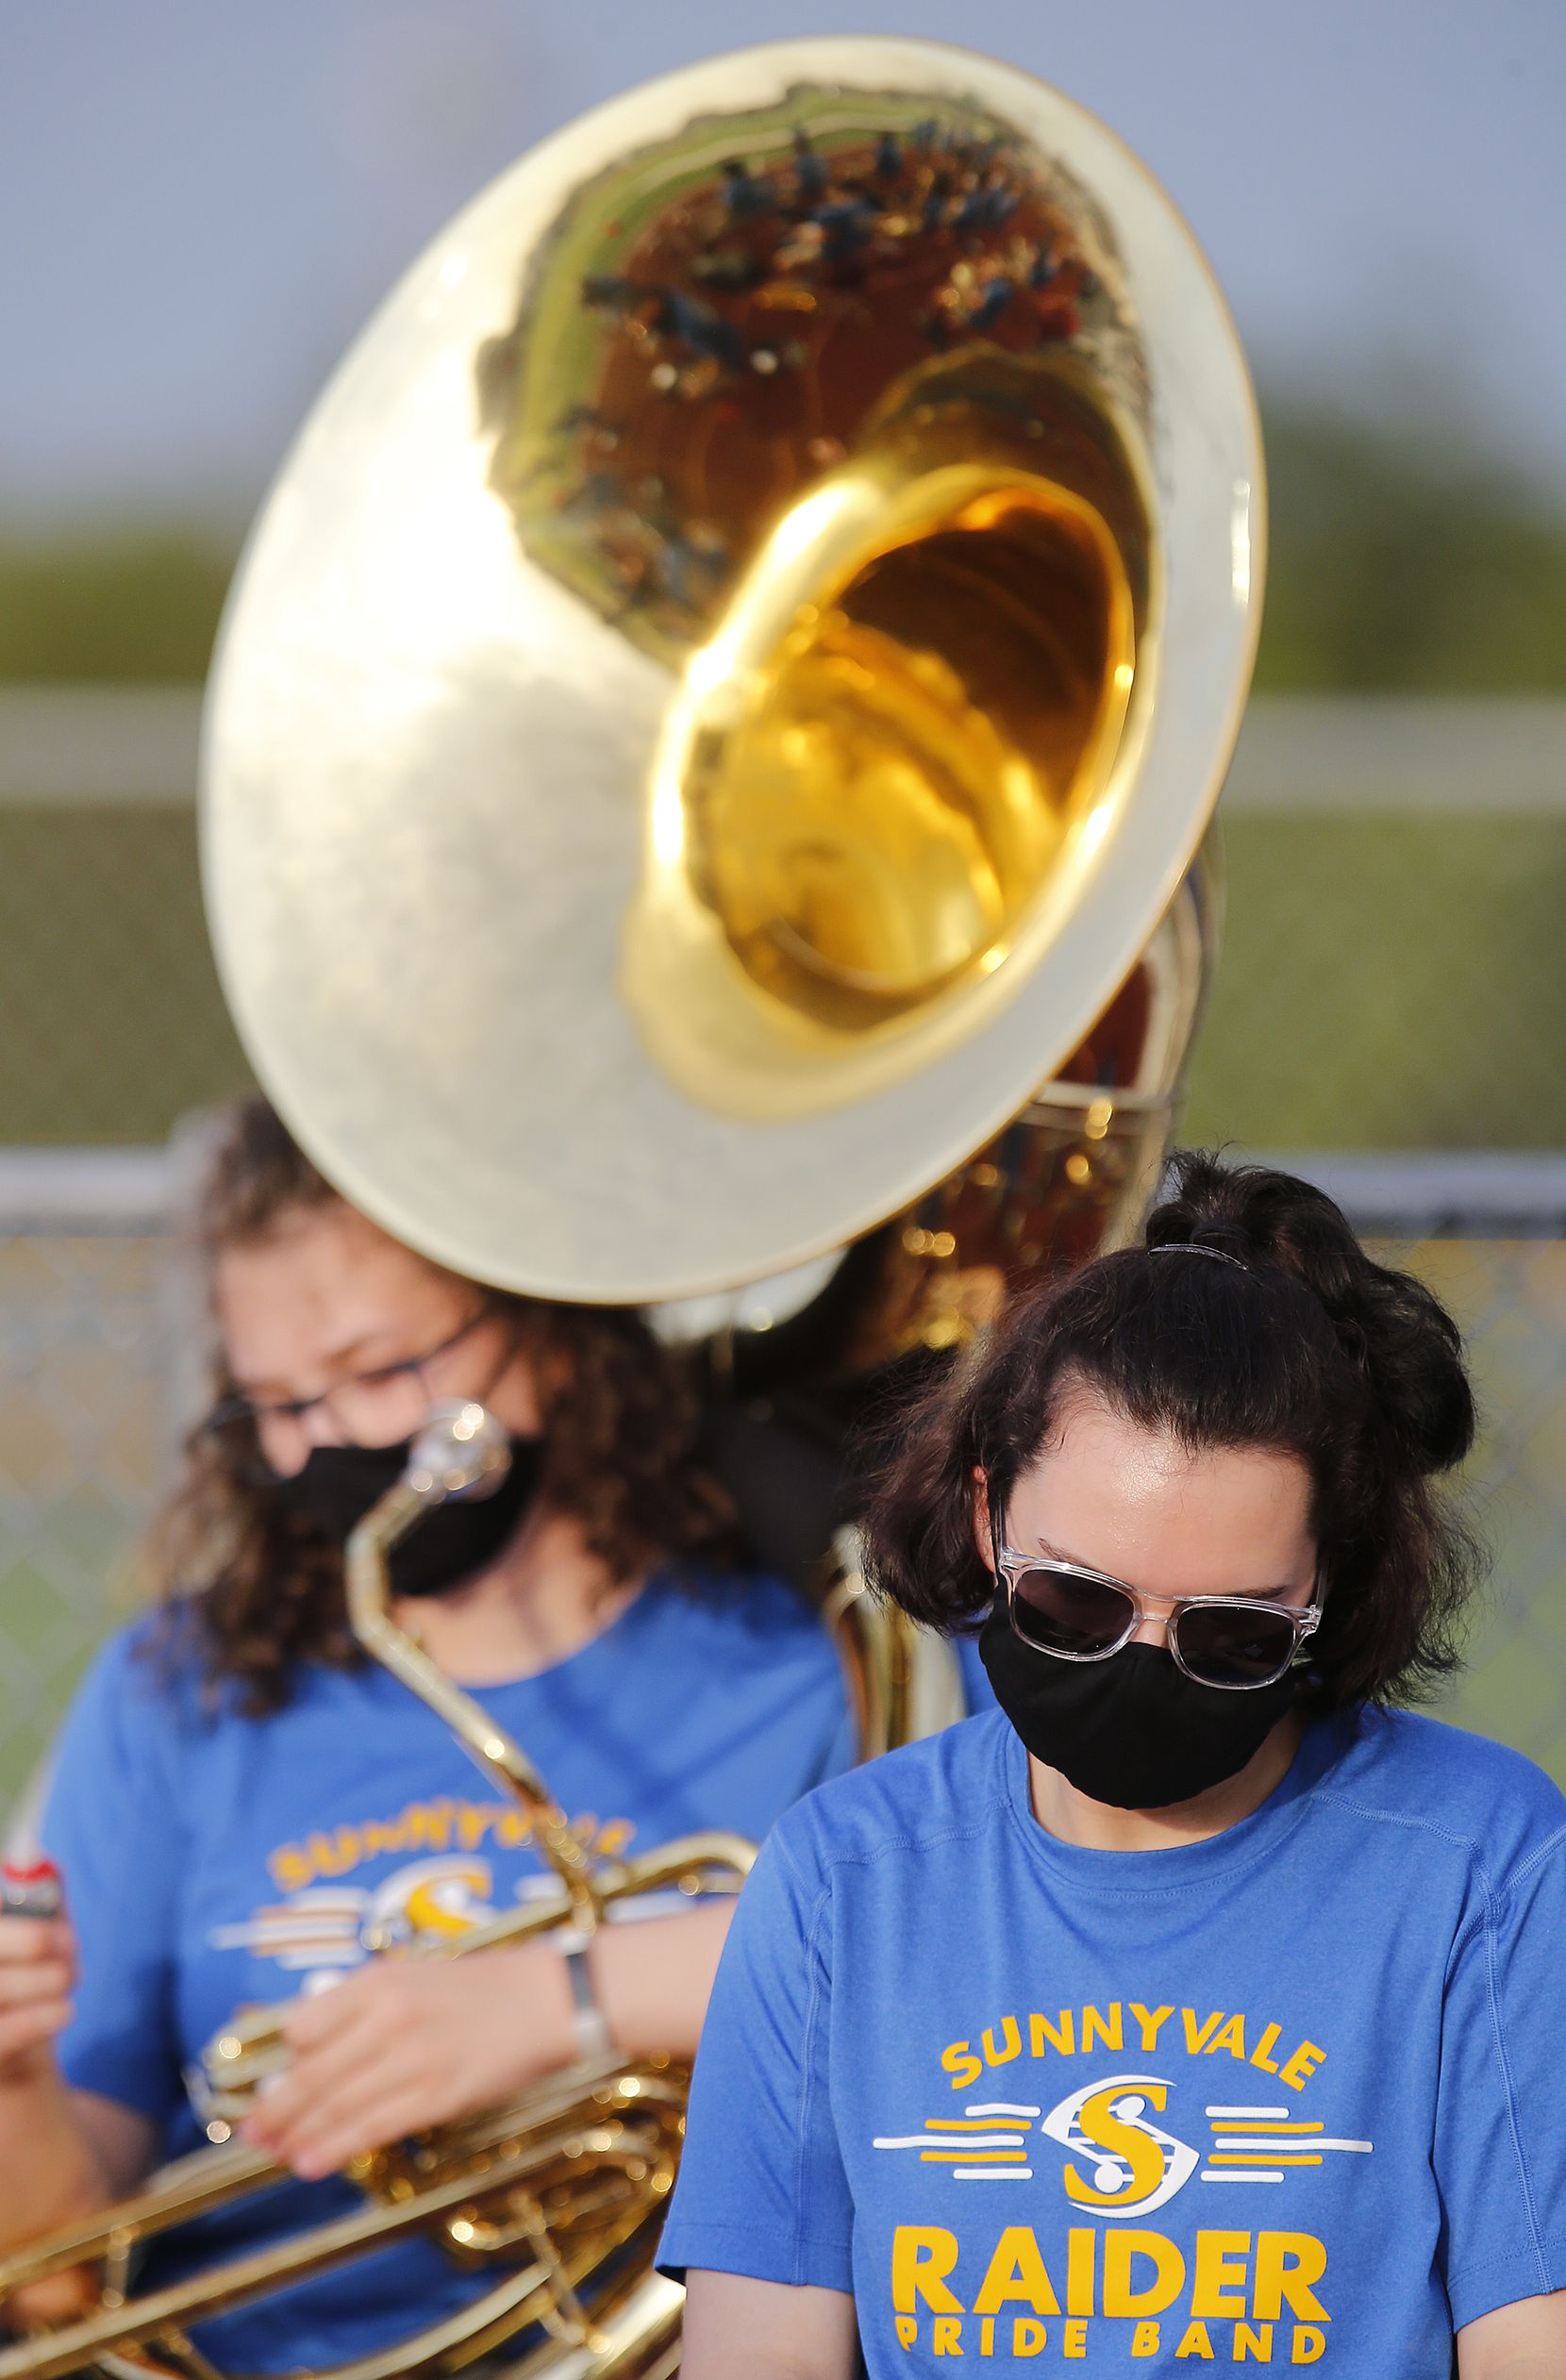 Lynsie Coning, 17, with a sousaphone, and Cadence Houghton, 17, a trumpet player, were members of the Sunnyvale High School marching band wearing masks as they take a break during warm ups as Melissa High School hosted Sunnyvale High School at Melissa I.S.D. Stadium on Friday night, September 4, 2020.  (Stewart F. House/Special Contributor)